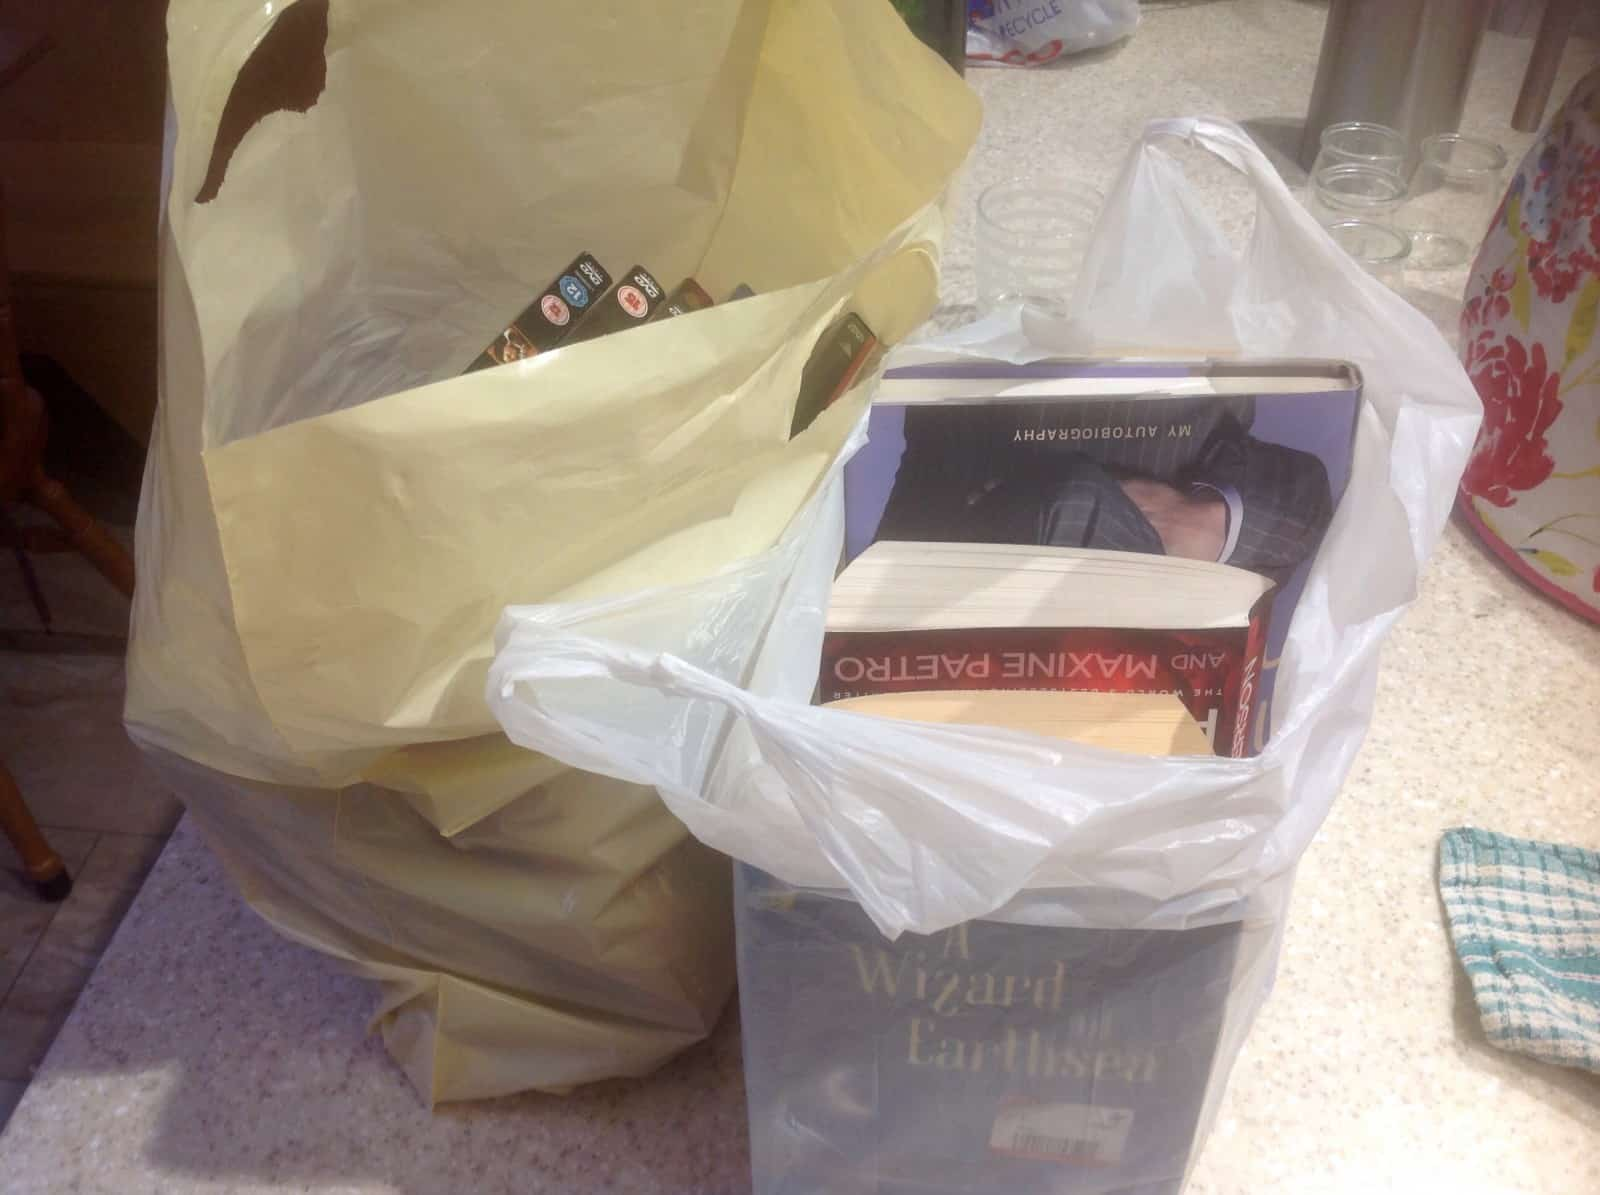 Books for charity shop